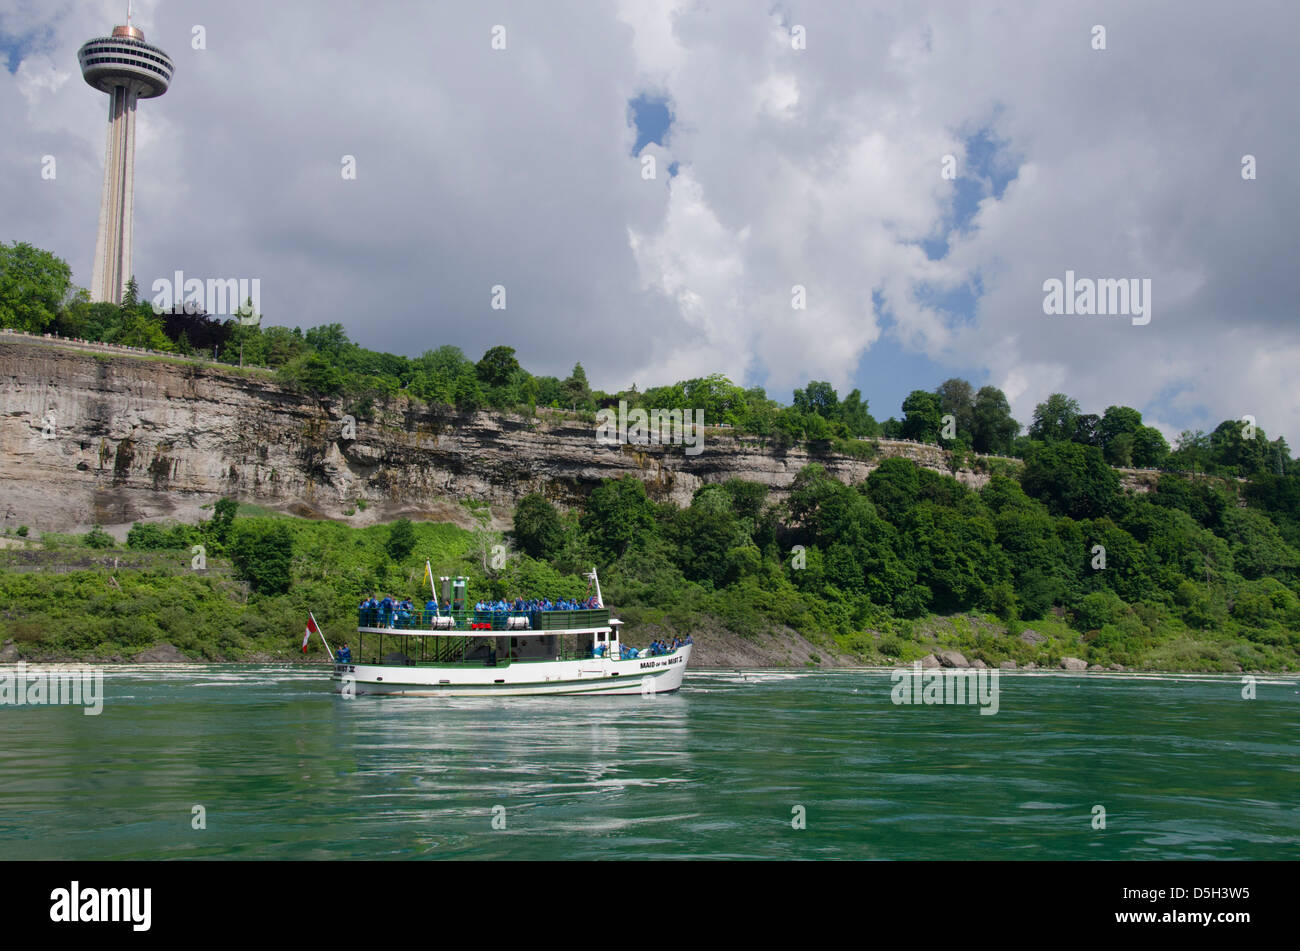 Canada, Ontario, Niagara Falls. Maid of the Mist sightseeing boat. - Stock Image